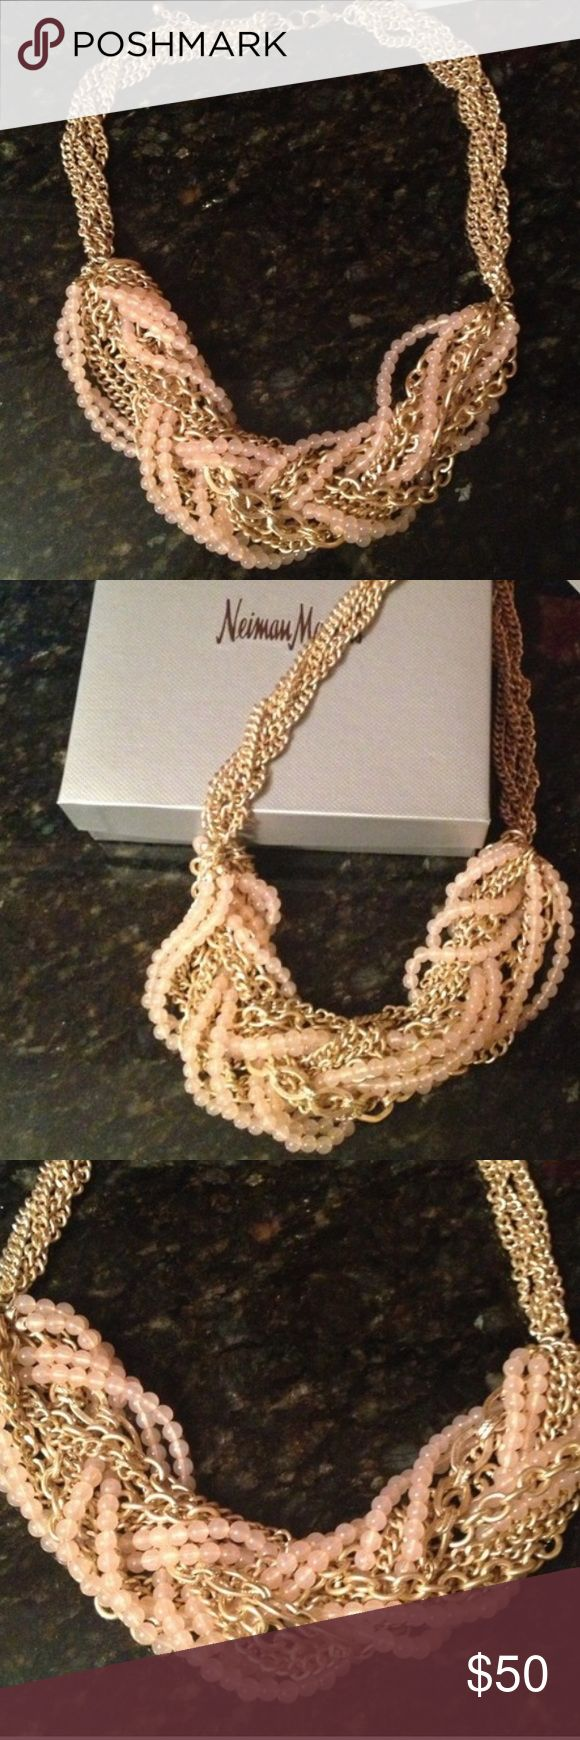 Chunky gold and pink statement necklace. Statement necklace bought from Neiman Marcus. (Lydell NYC) Gold chains and pink beads. Absolutely stunning. Only worn once. Adjustable clasp closure. Comes with Neiman Marcus gift box. Neiman Marcus Jewelry Necklaces